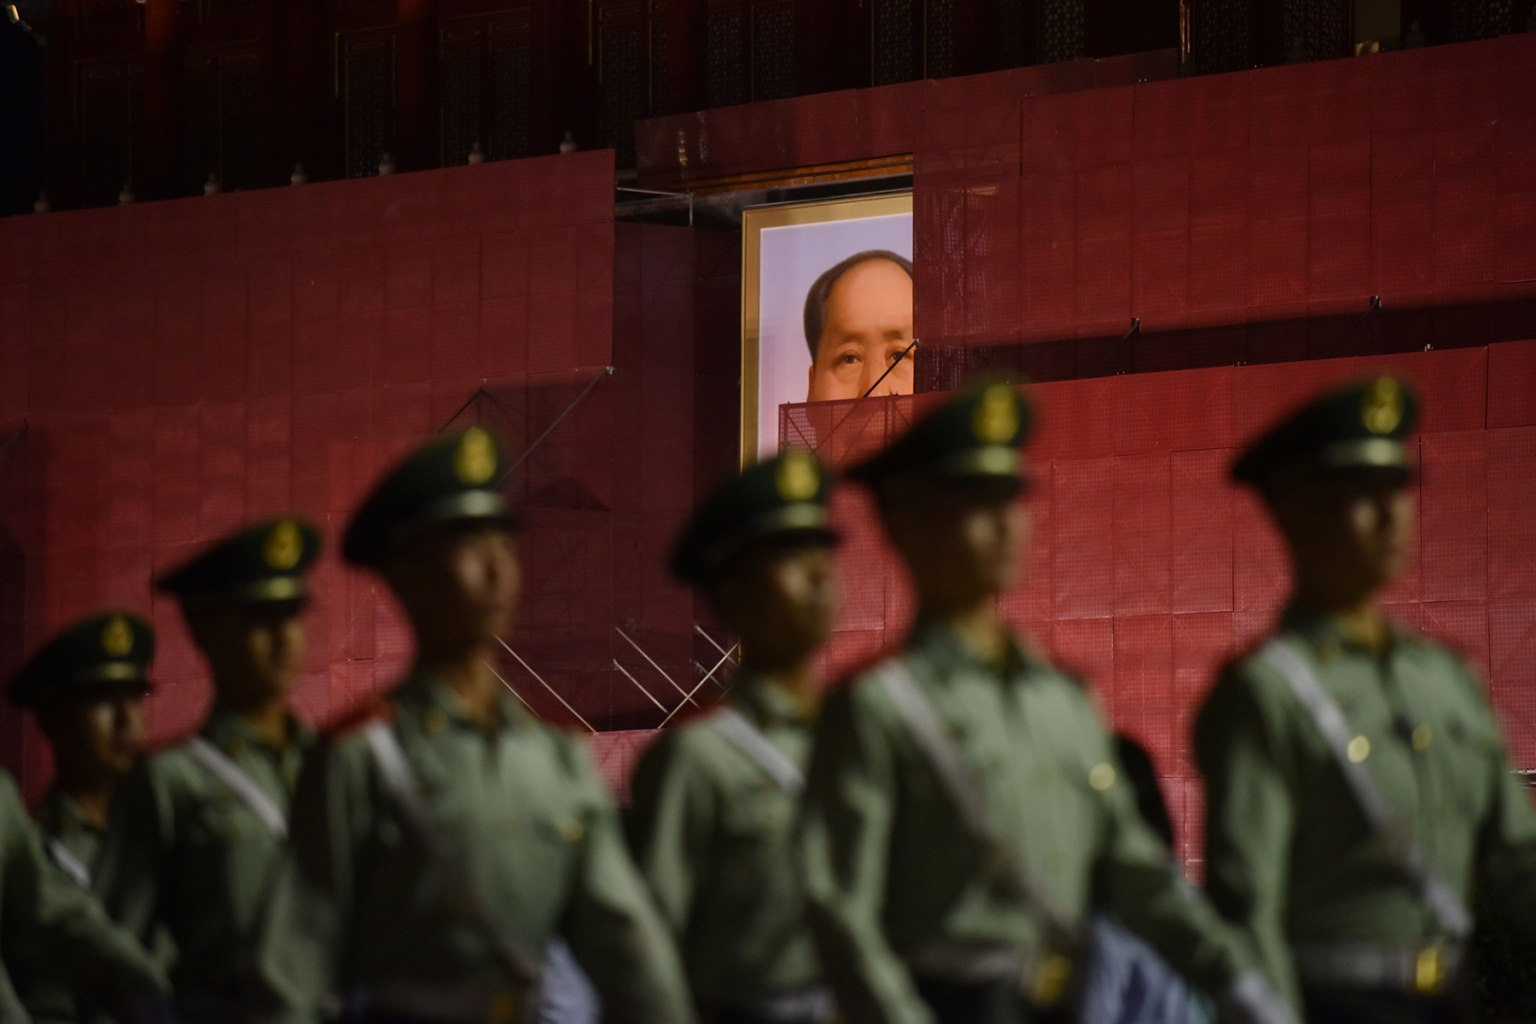 Paramilitary police officers marching past the portrait of late communist leader Mao Zedong on Tiananmen Gate as it undergoes renovations in Beijing on May 18. GREG BAKER/AFP/Getty Images